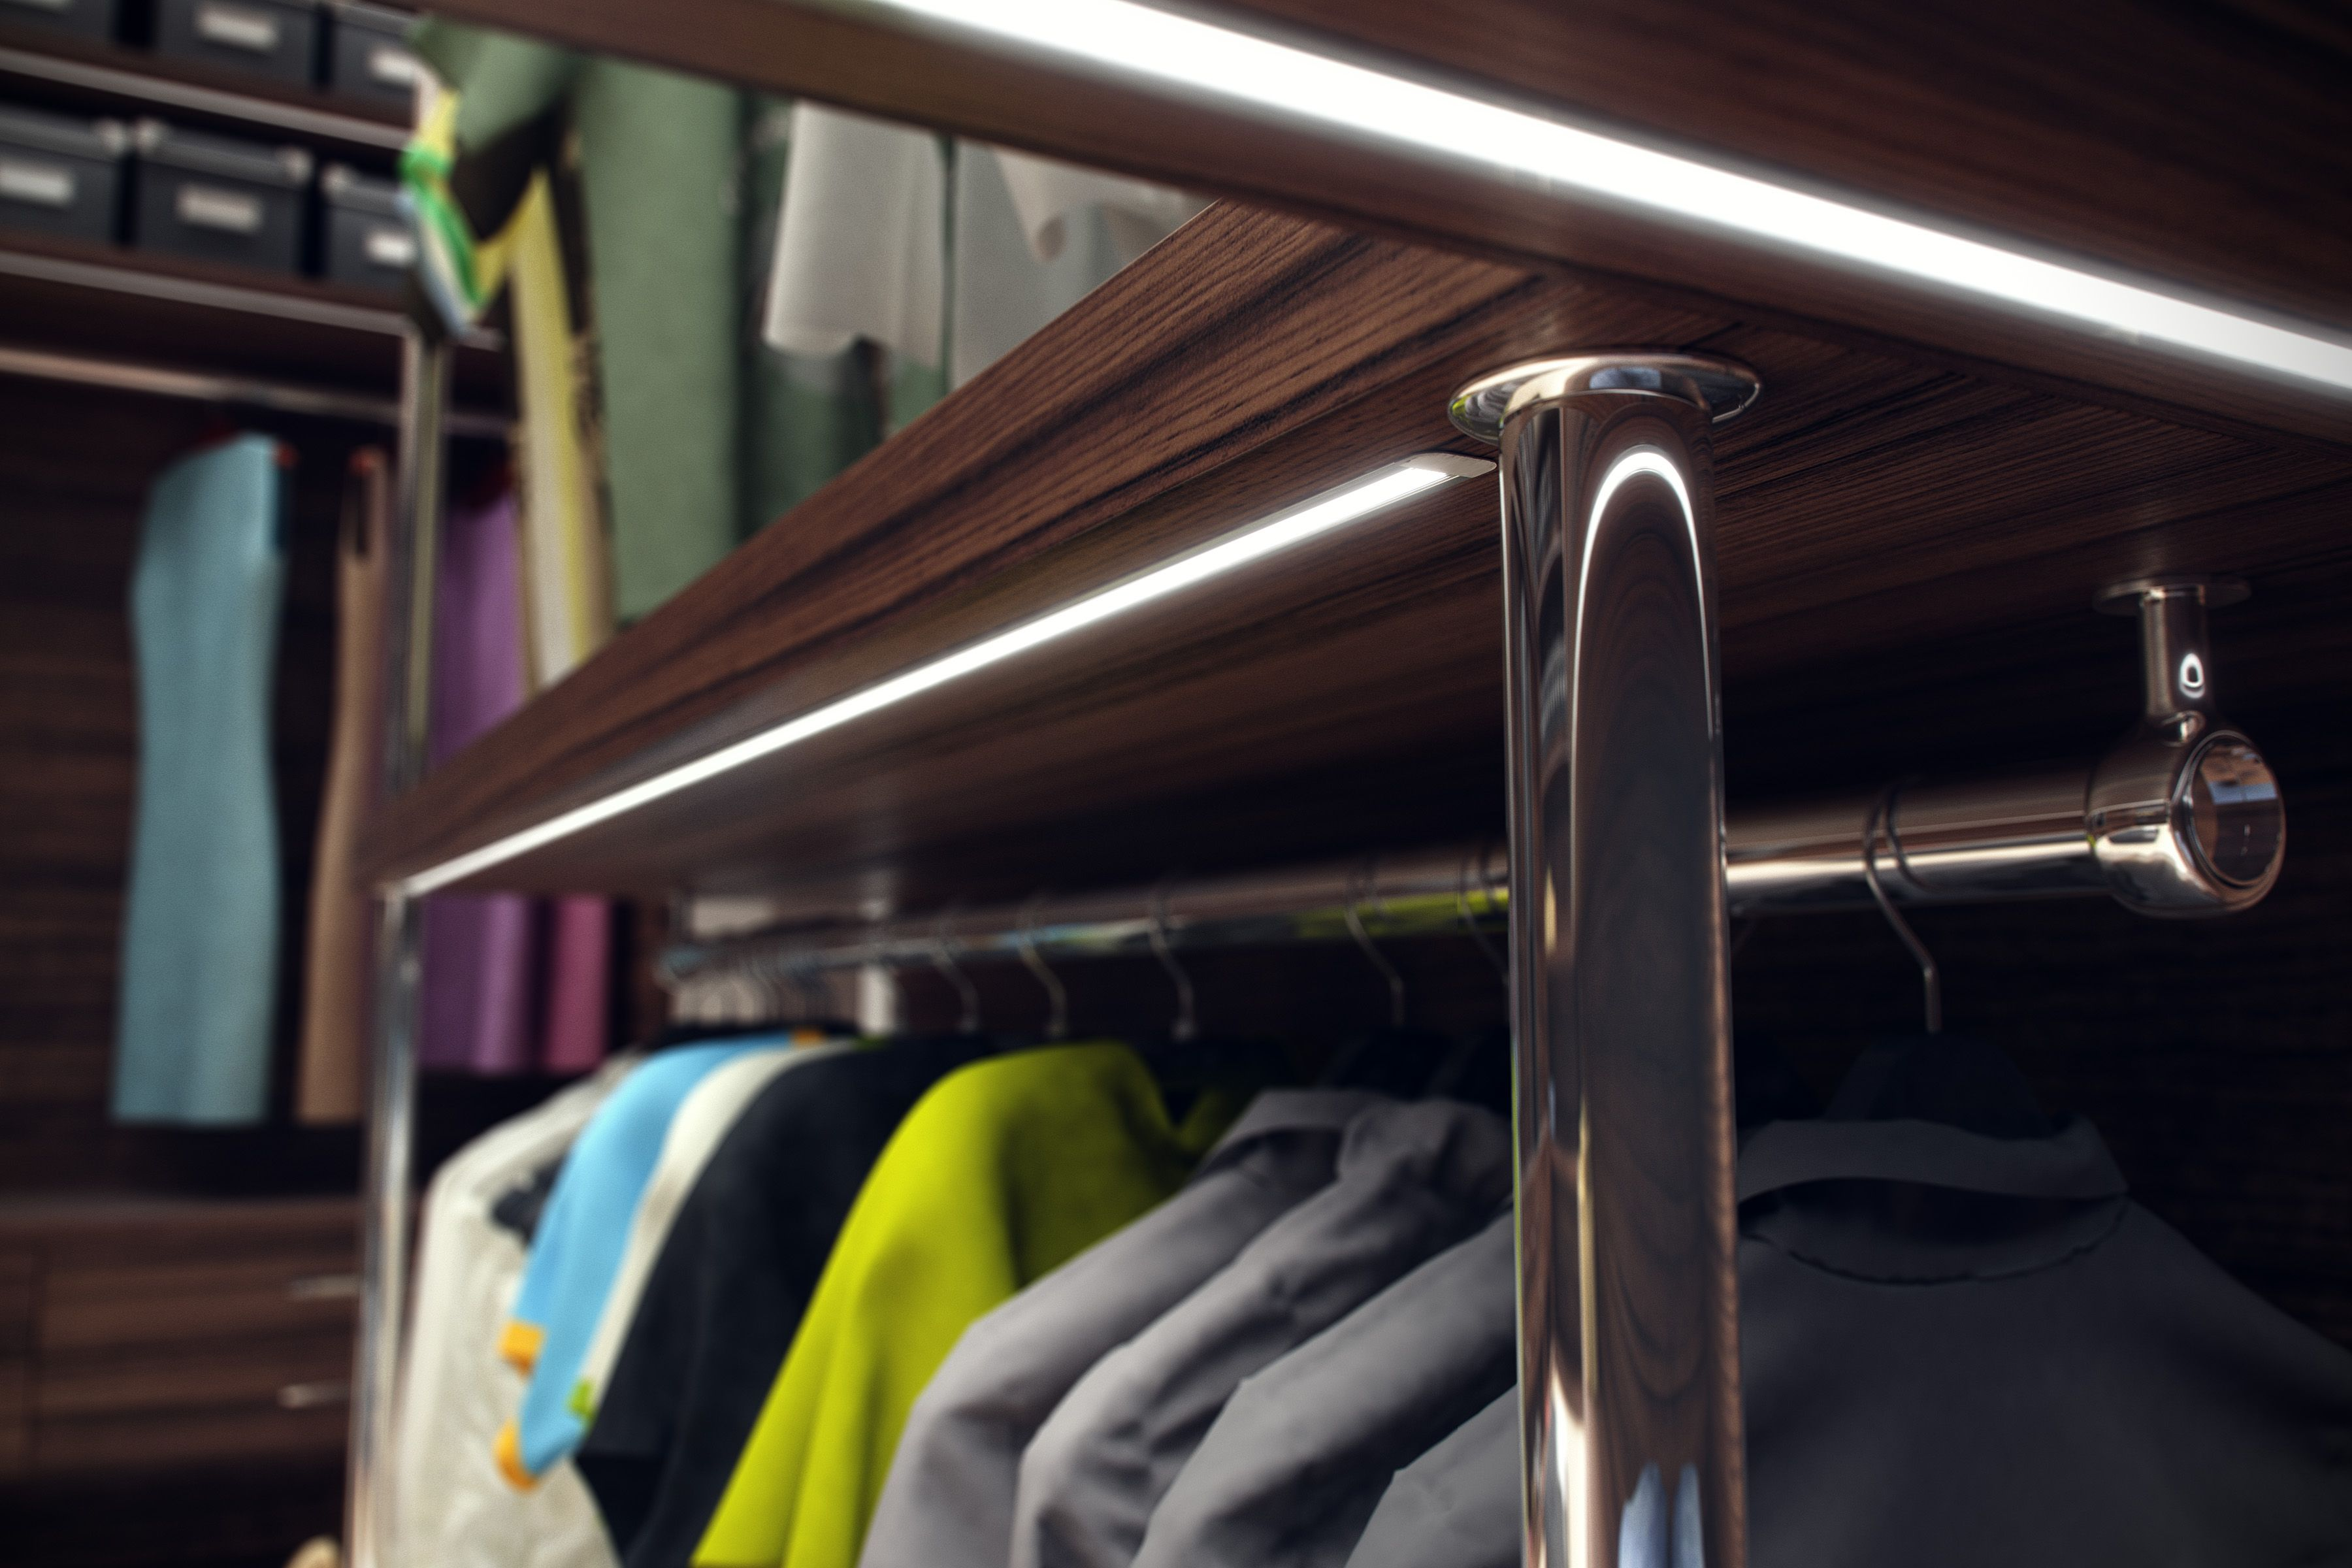 closet led plan to with for light lights maxresdefault lighting q fixtures renovation compact